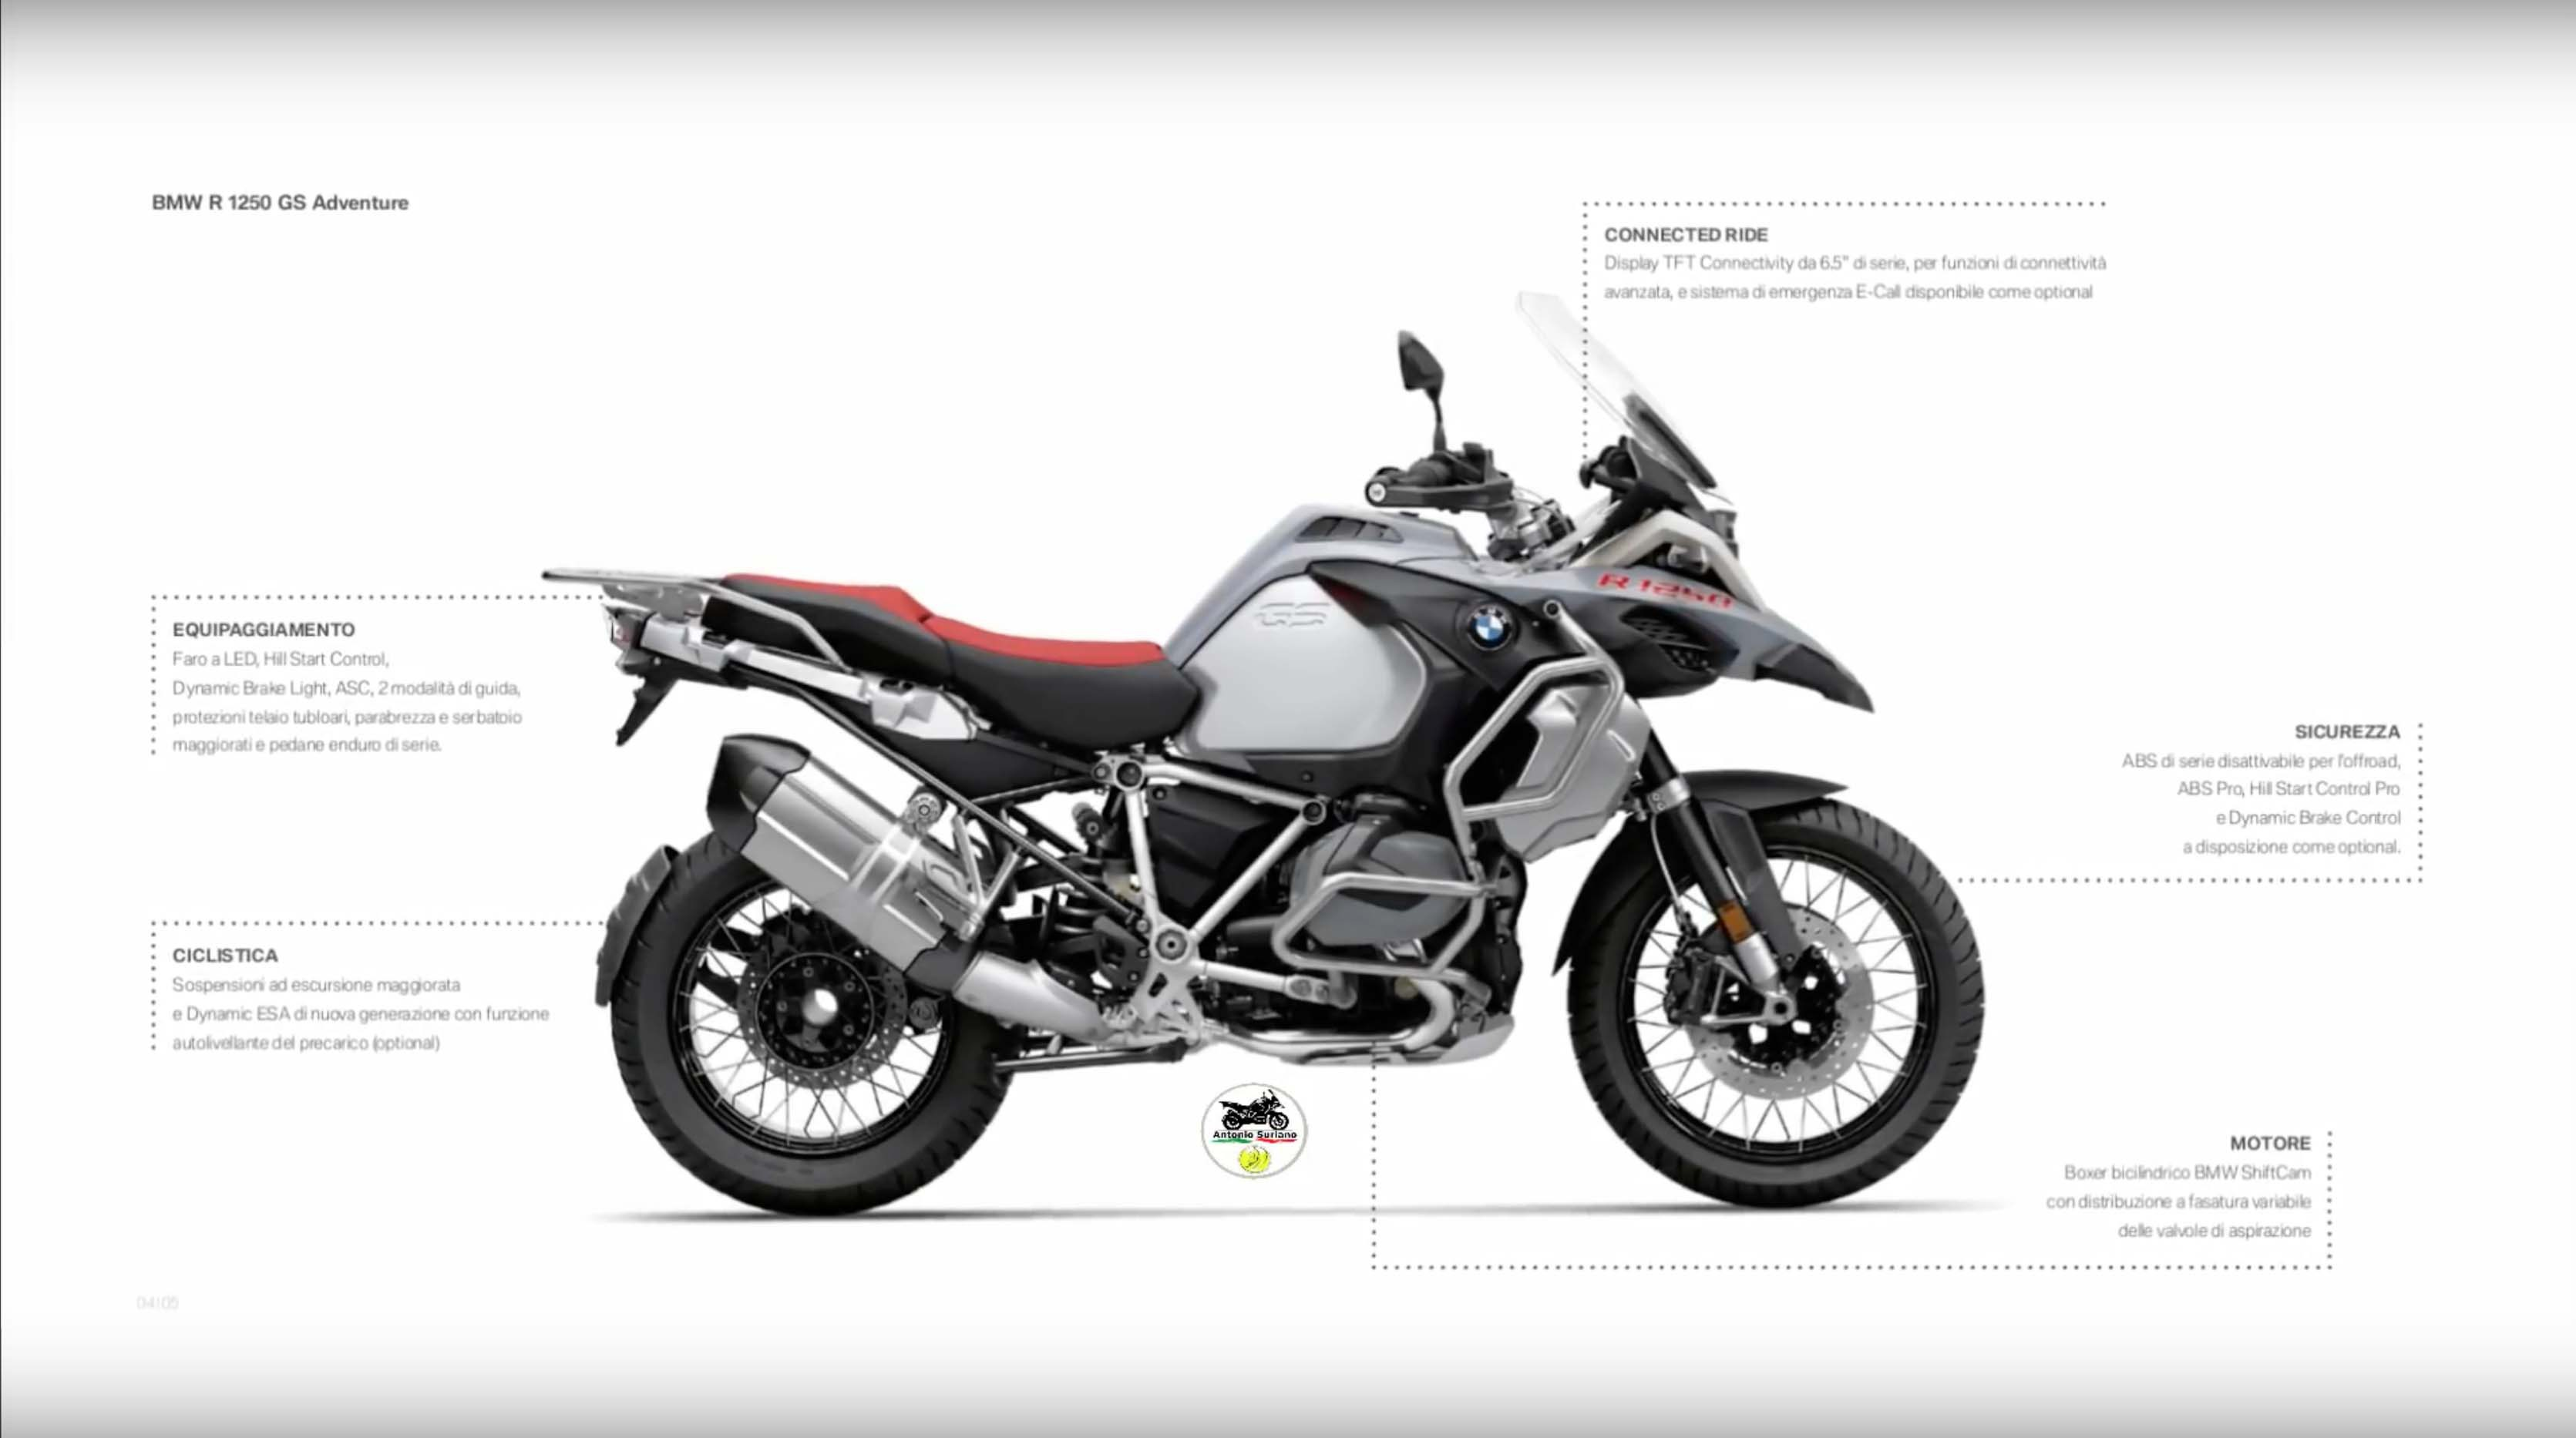 2019 BMW R1250GS Adventure leak 03